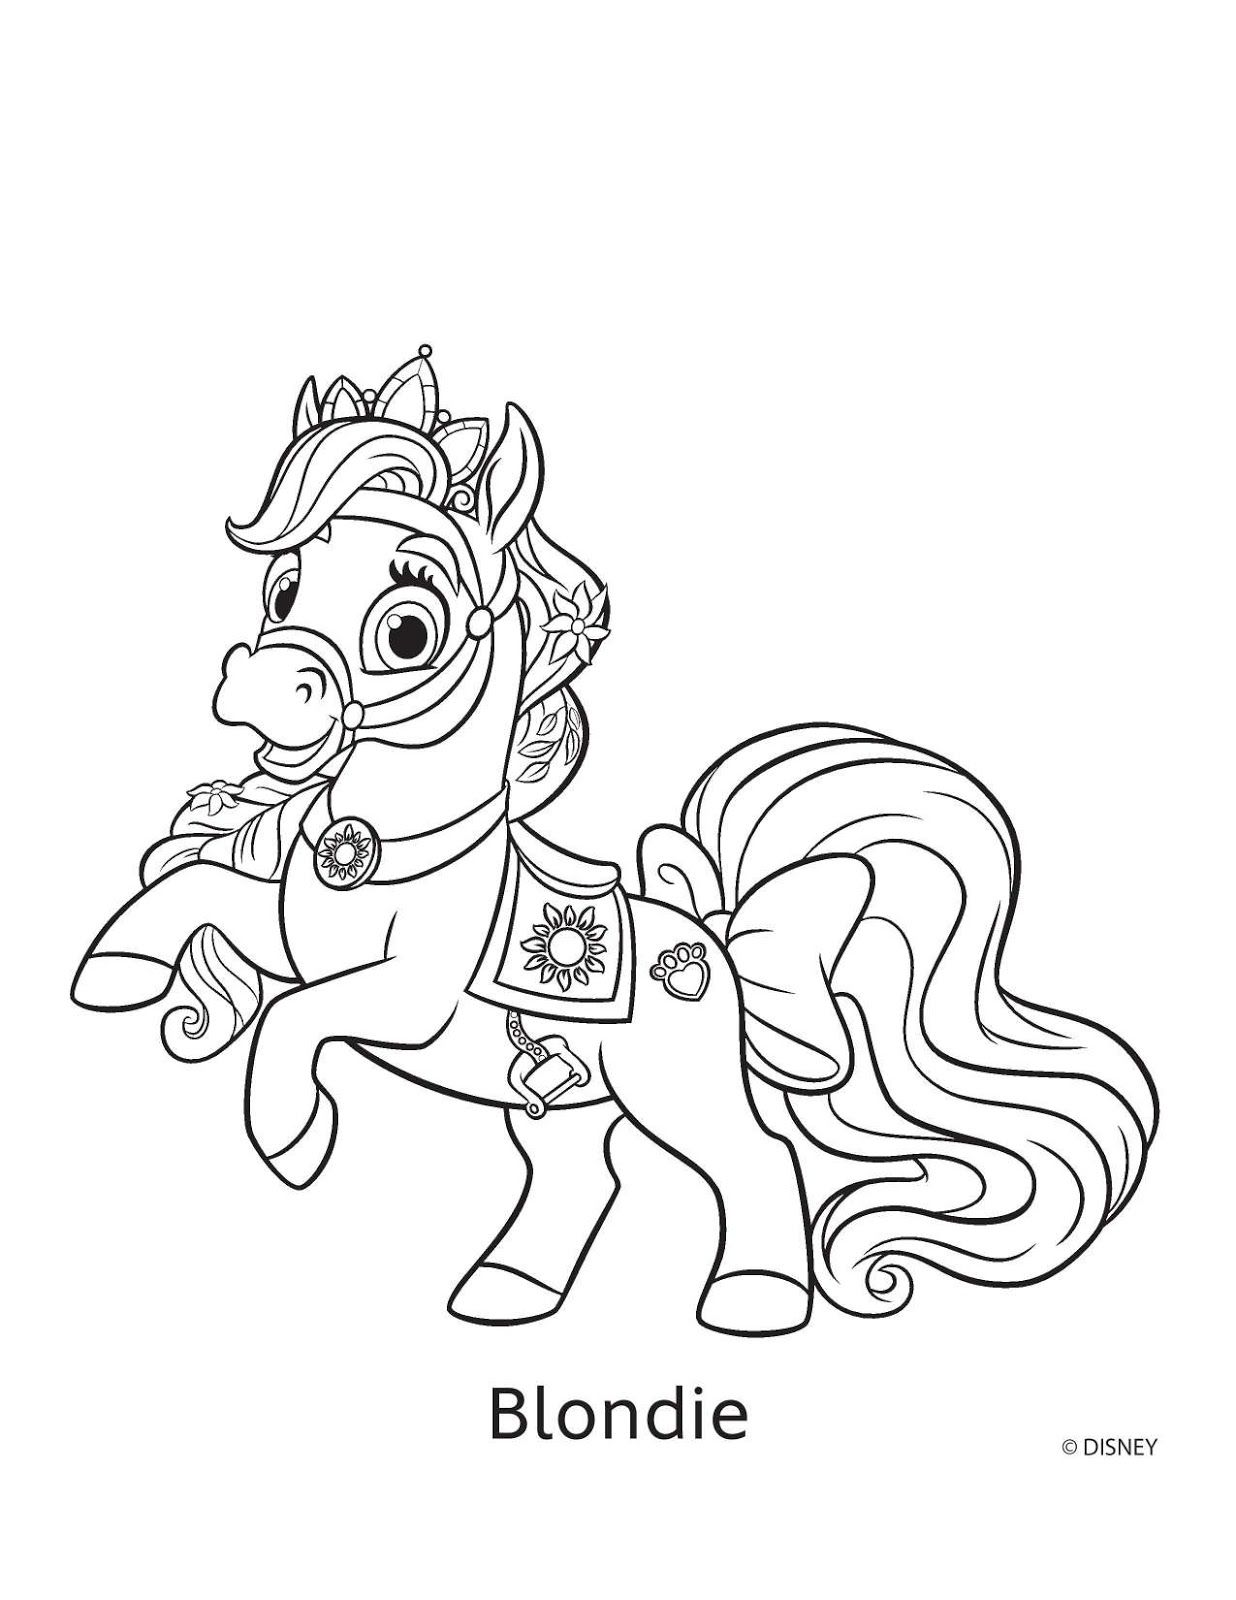 Disney Coloring Pages The Doll Palace | Coloring Pages | Pinterest ...